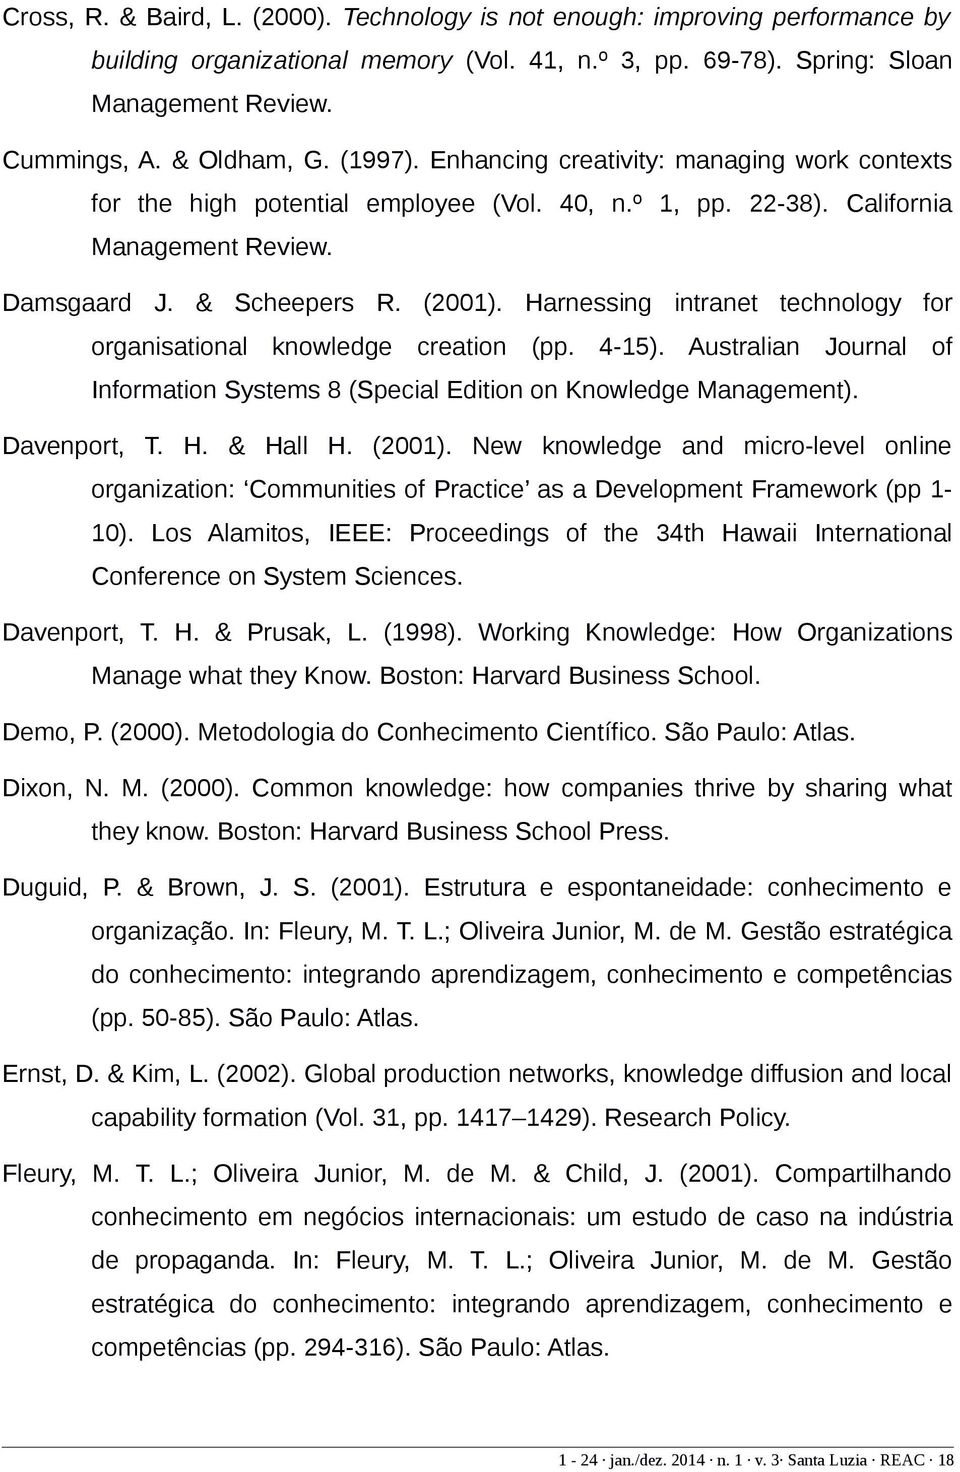 Harnessing intranet technology for organisational knowledge creation (pp. 4-15). Australian Journal of Information Systems 8 (Special Edition on Knowledge Management). Davenport, T. H. & Hall H.